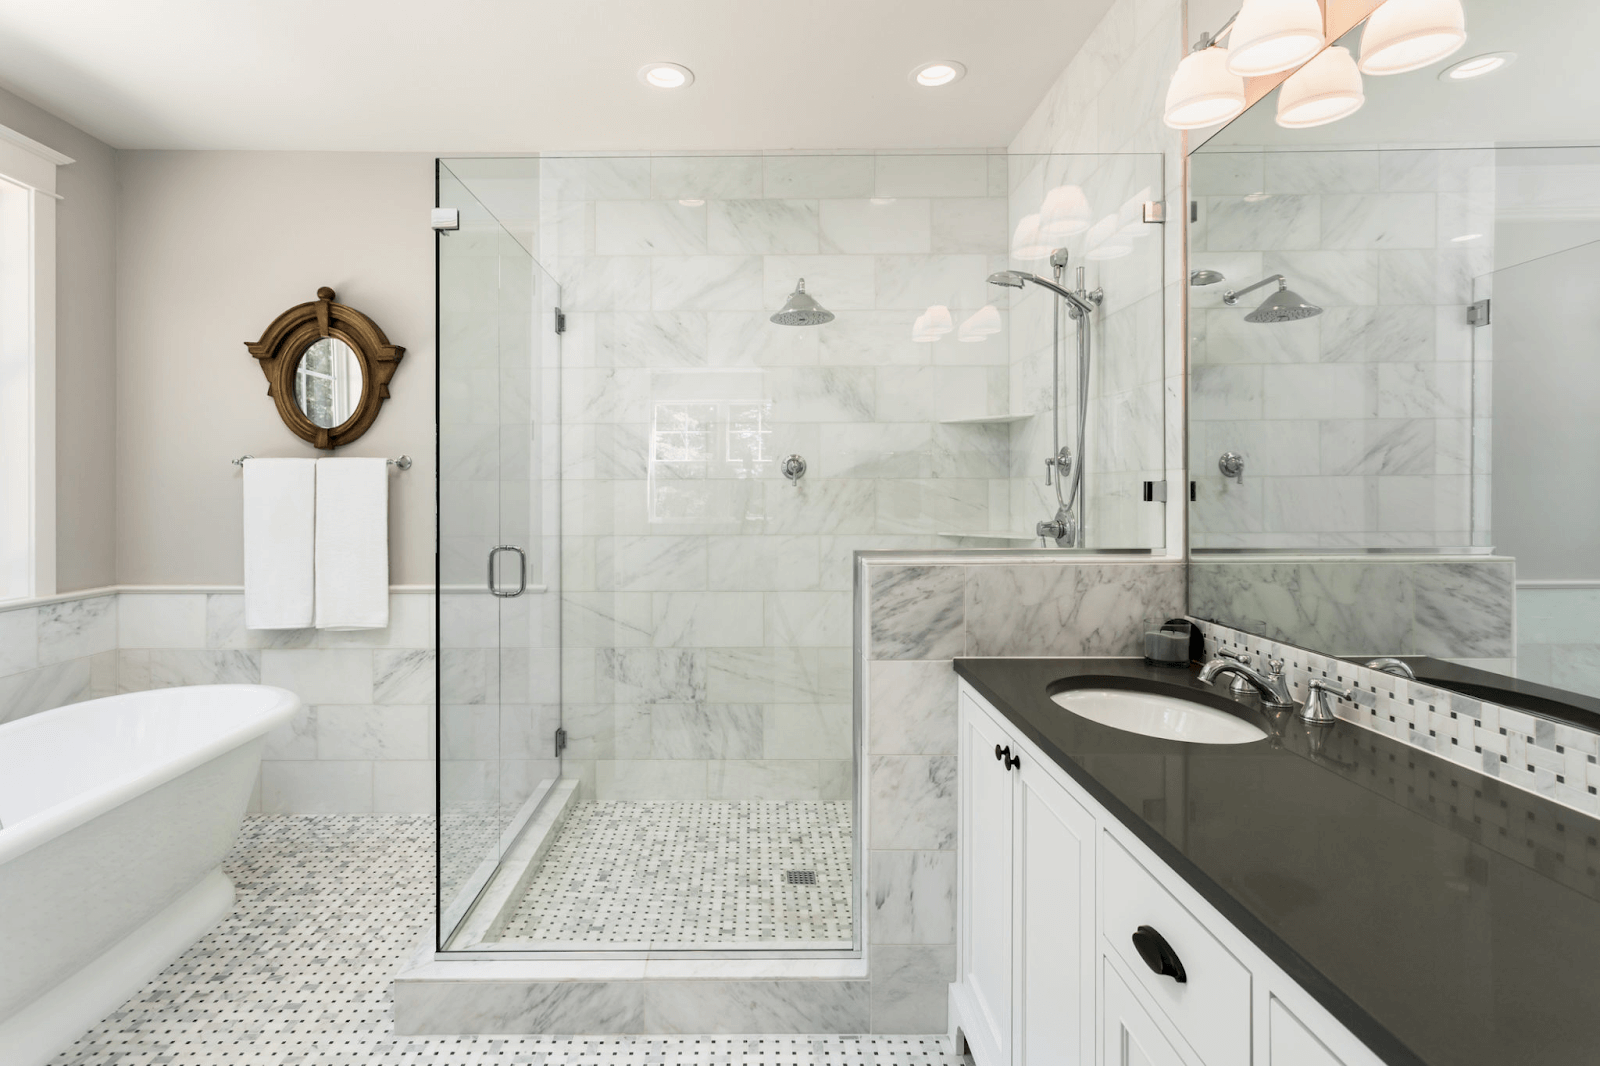 40 Free Shower Tile Ideas (Tips For Choosing Tile)